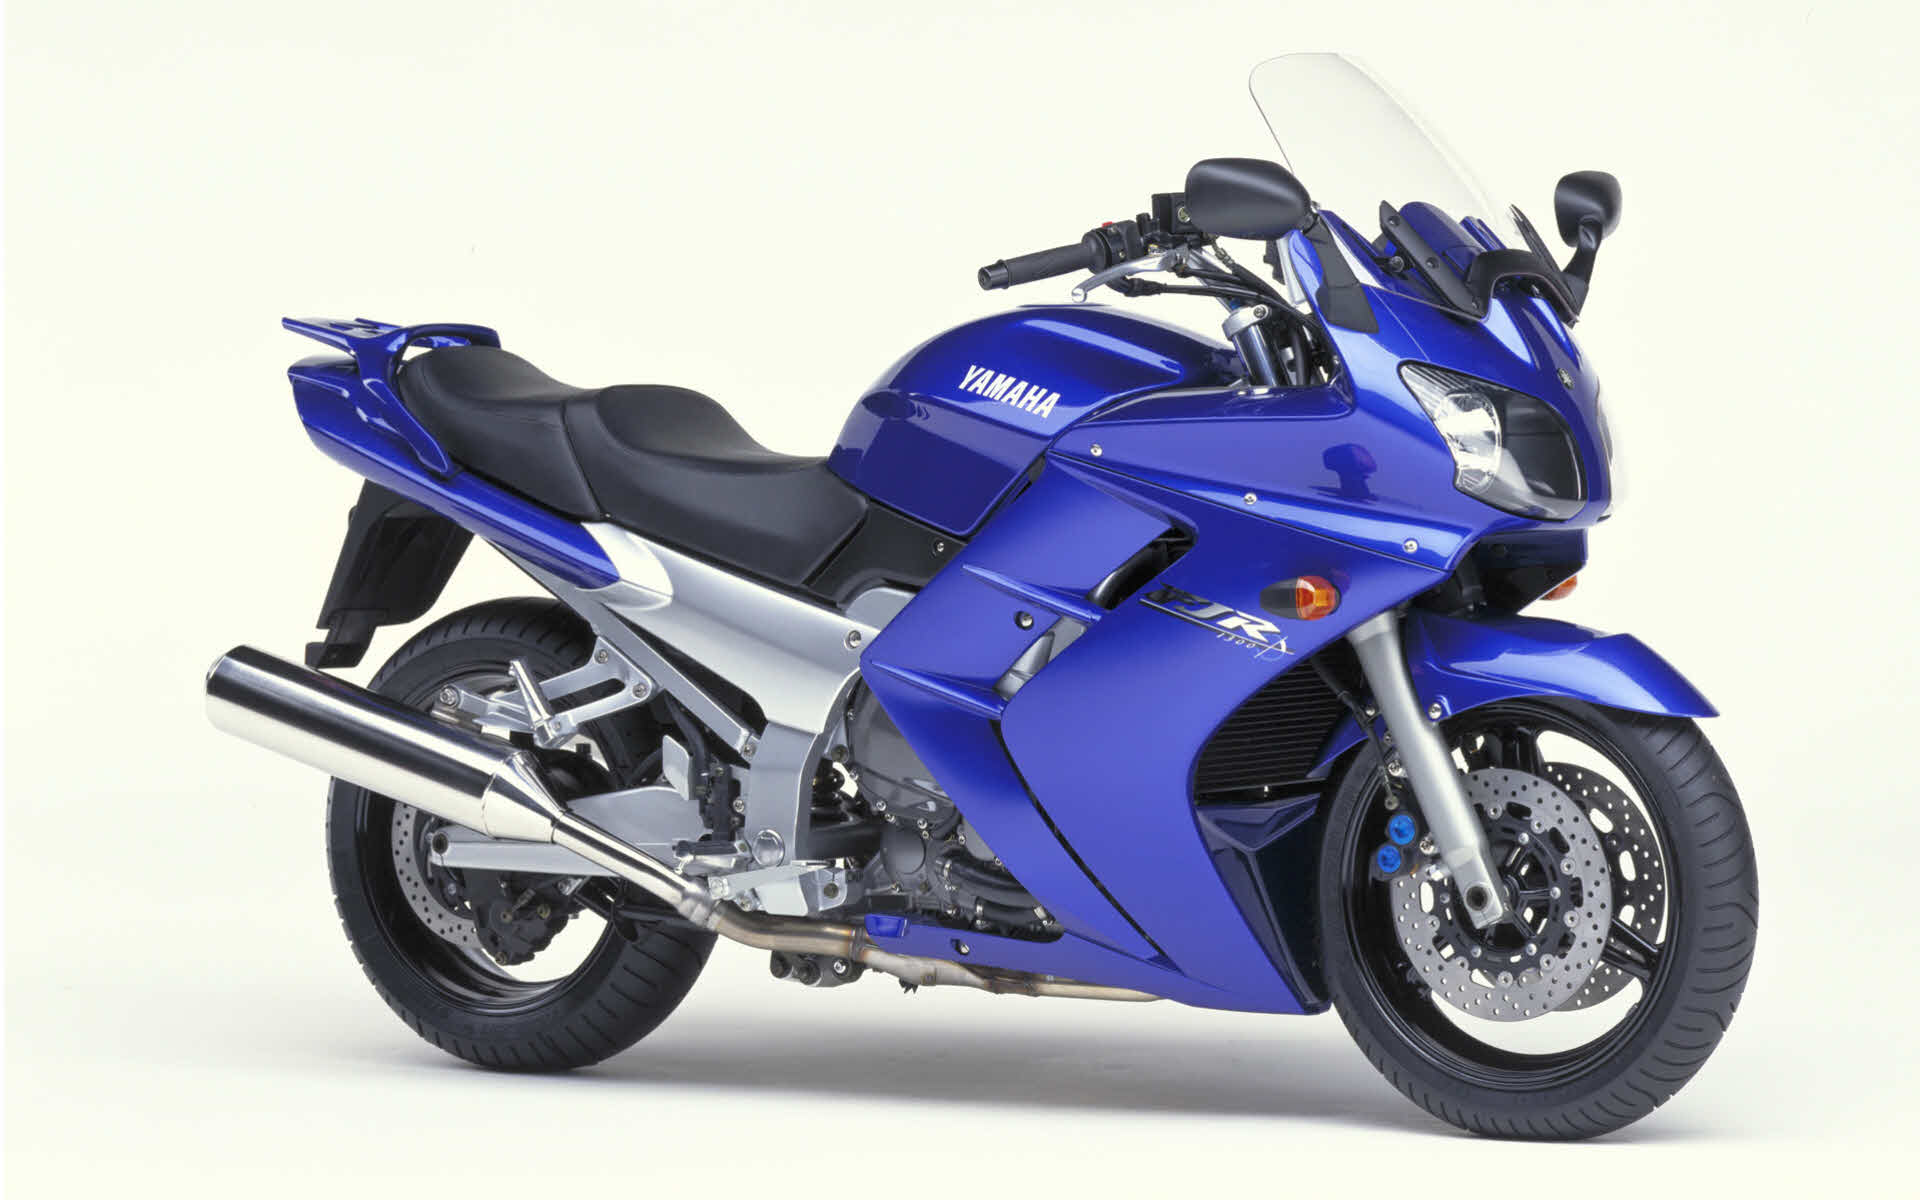 2001 2002 Deep Purplish Blue Metallic C (DPBMC)